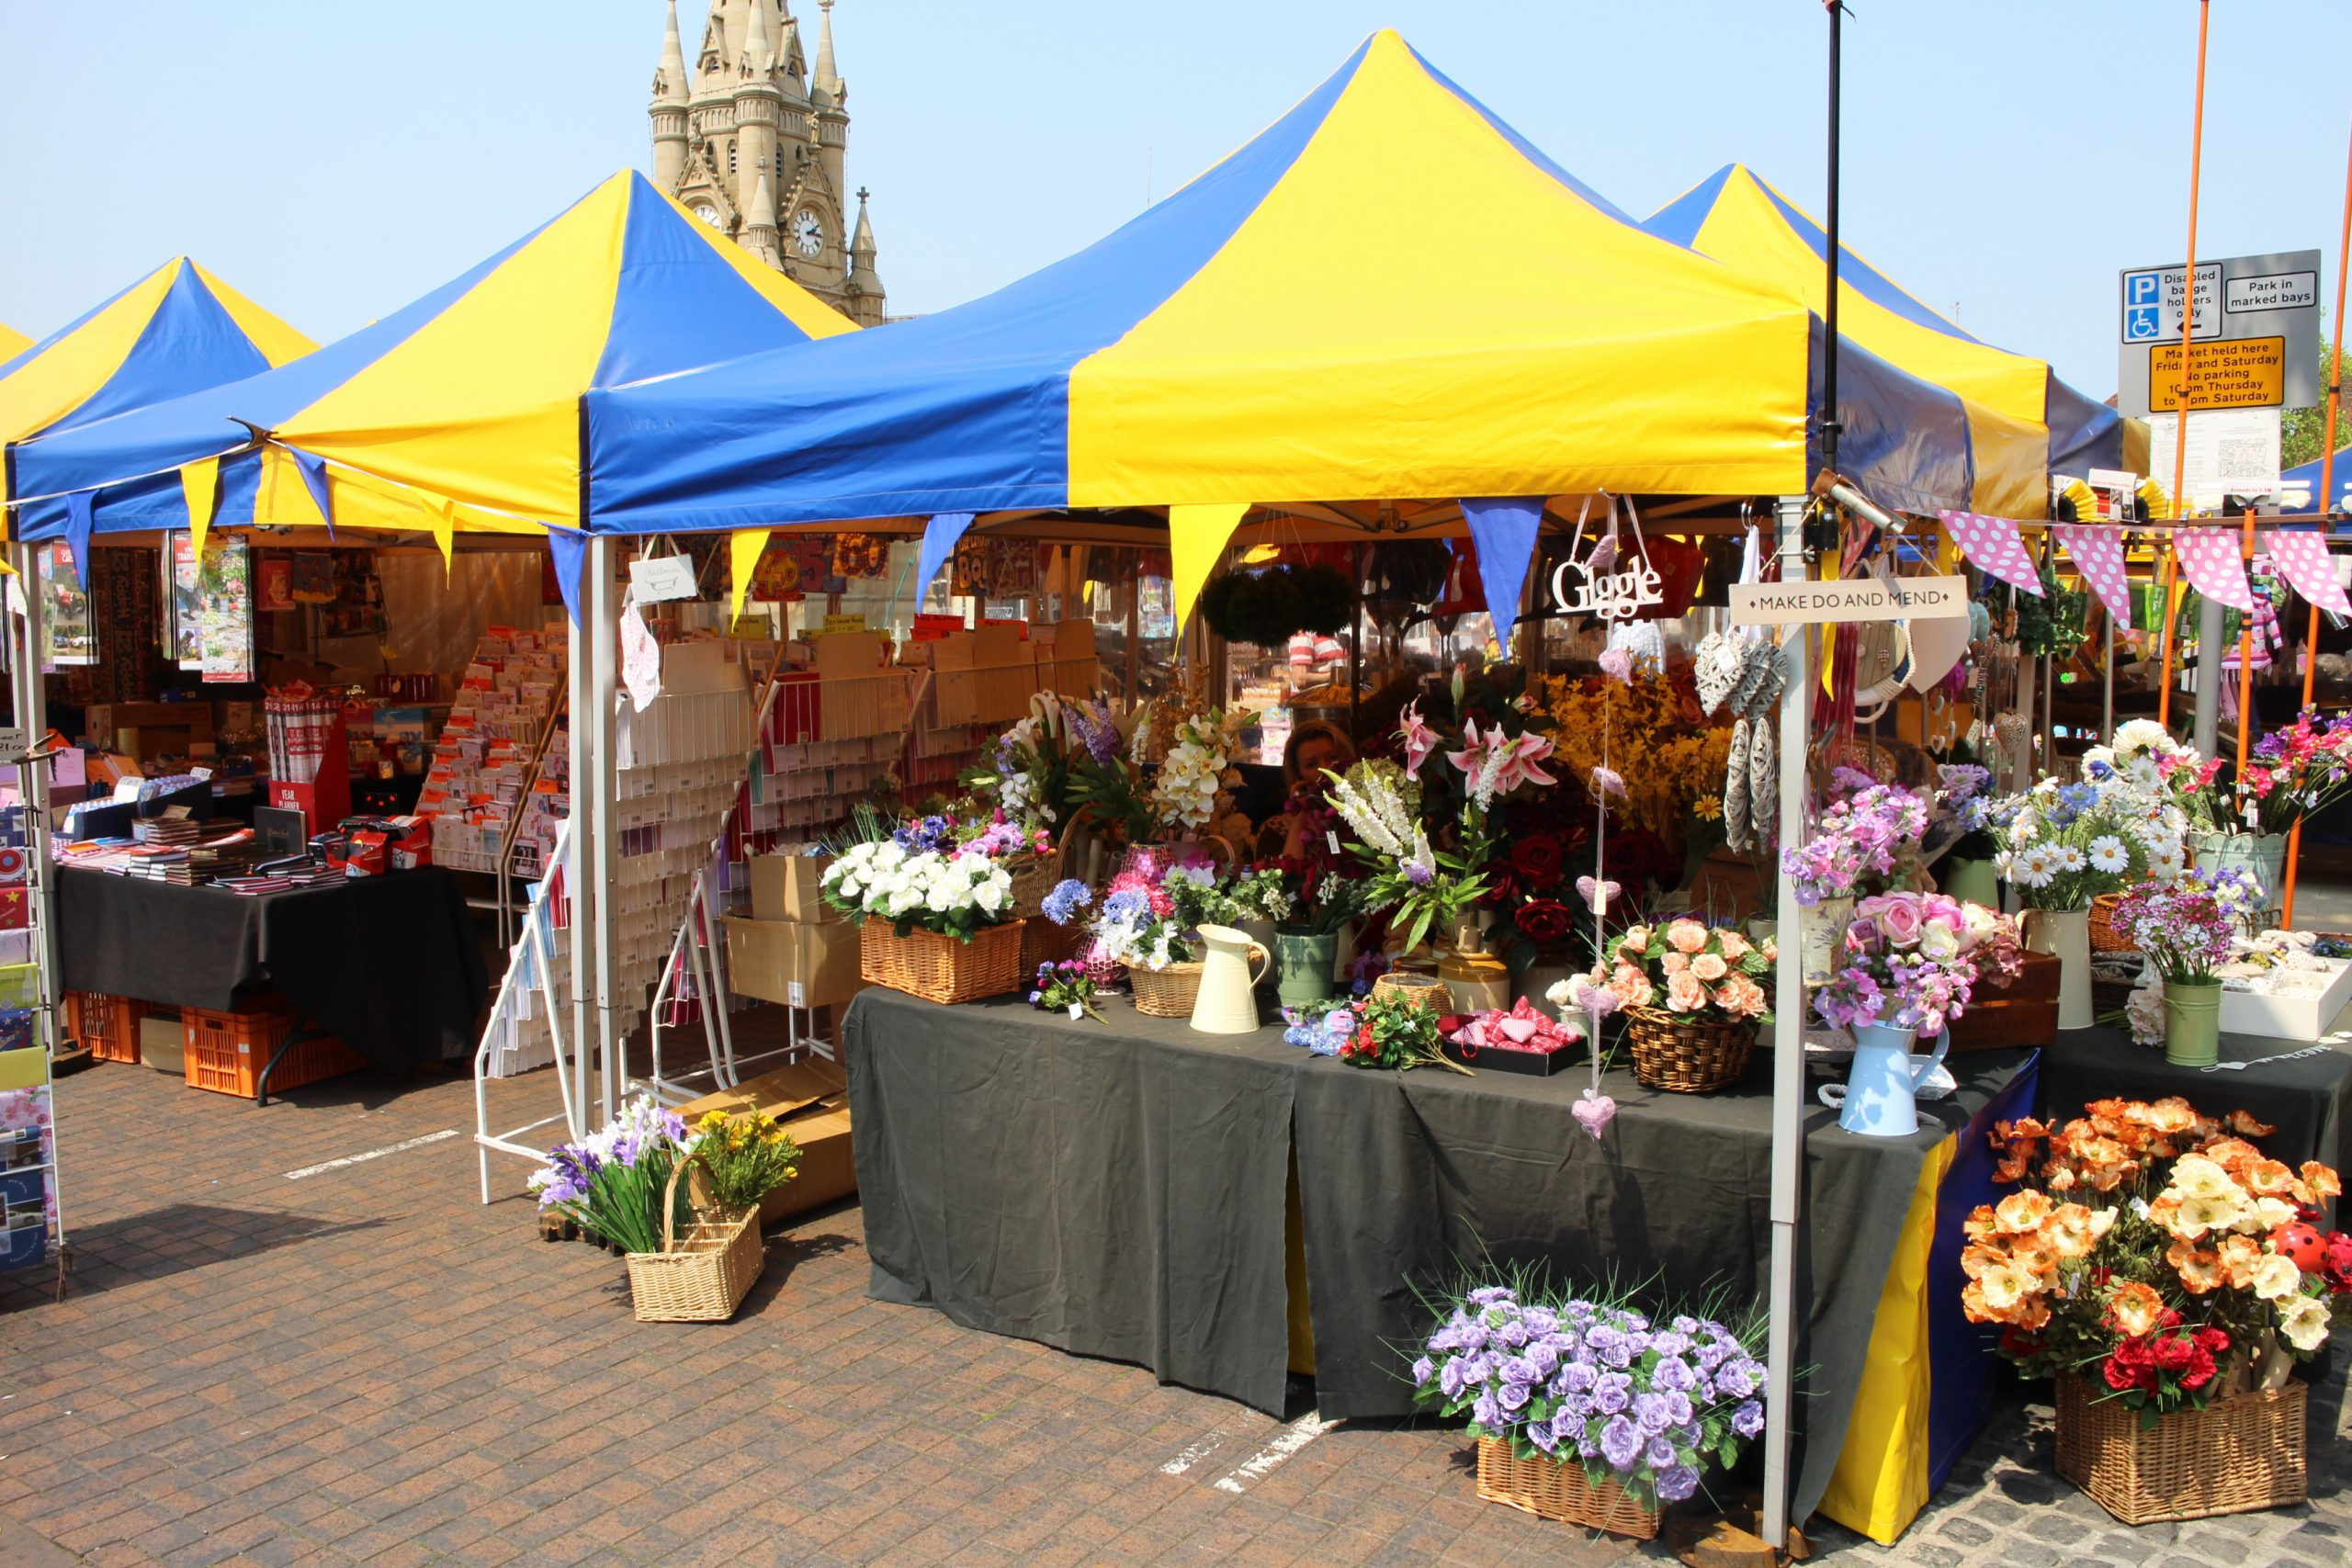 Instant Marquees market stalls at Stratford market. Sky blue and yellow.